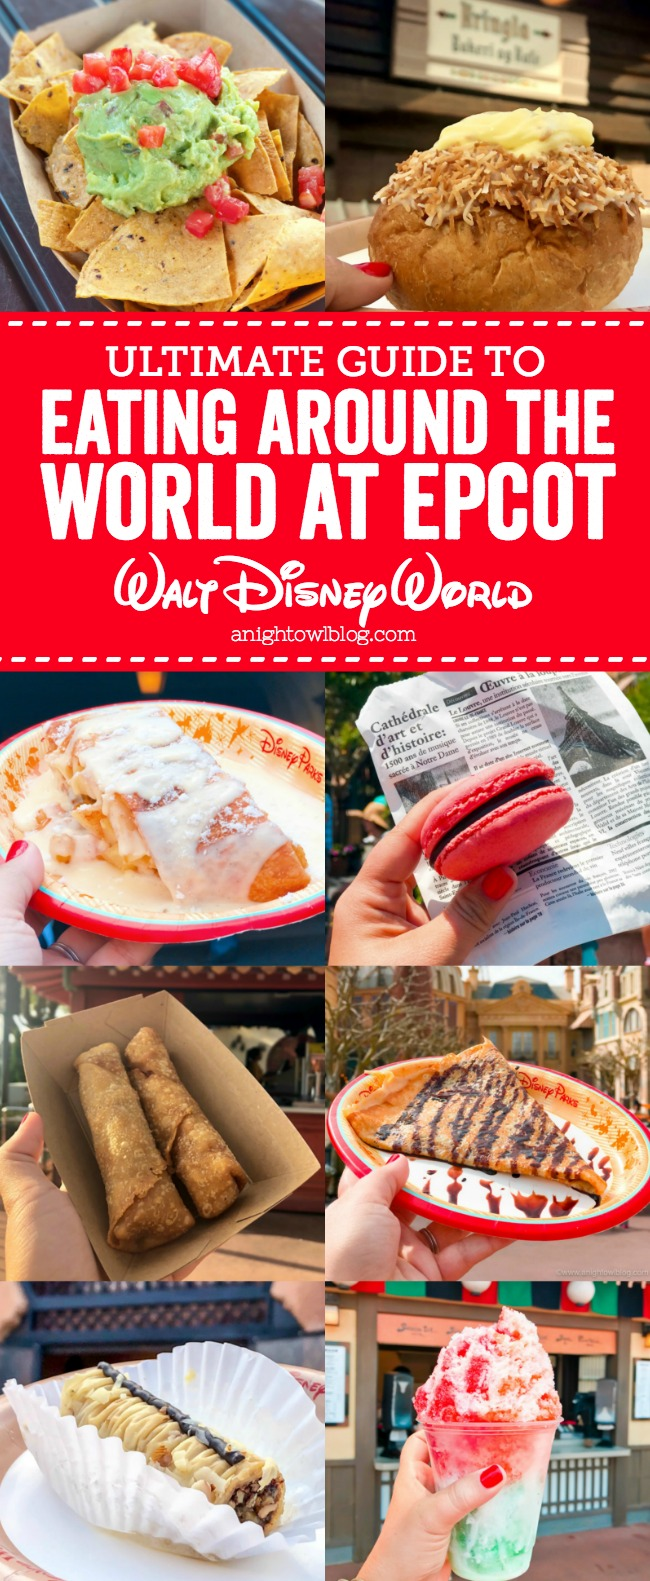 From Fish and Chips to Funnel Cake, follow our Guide to Eating Around the World at EPCOT in Walt Disney World!